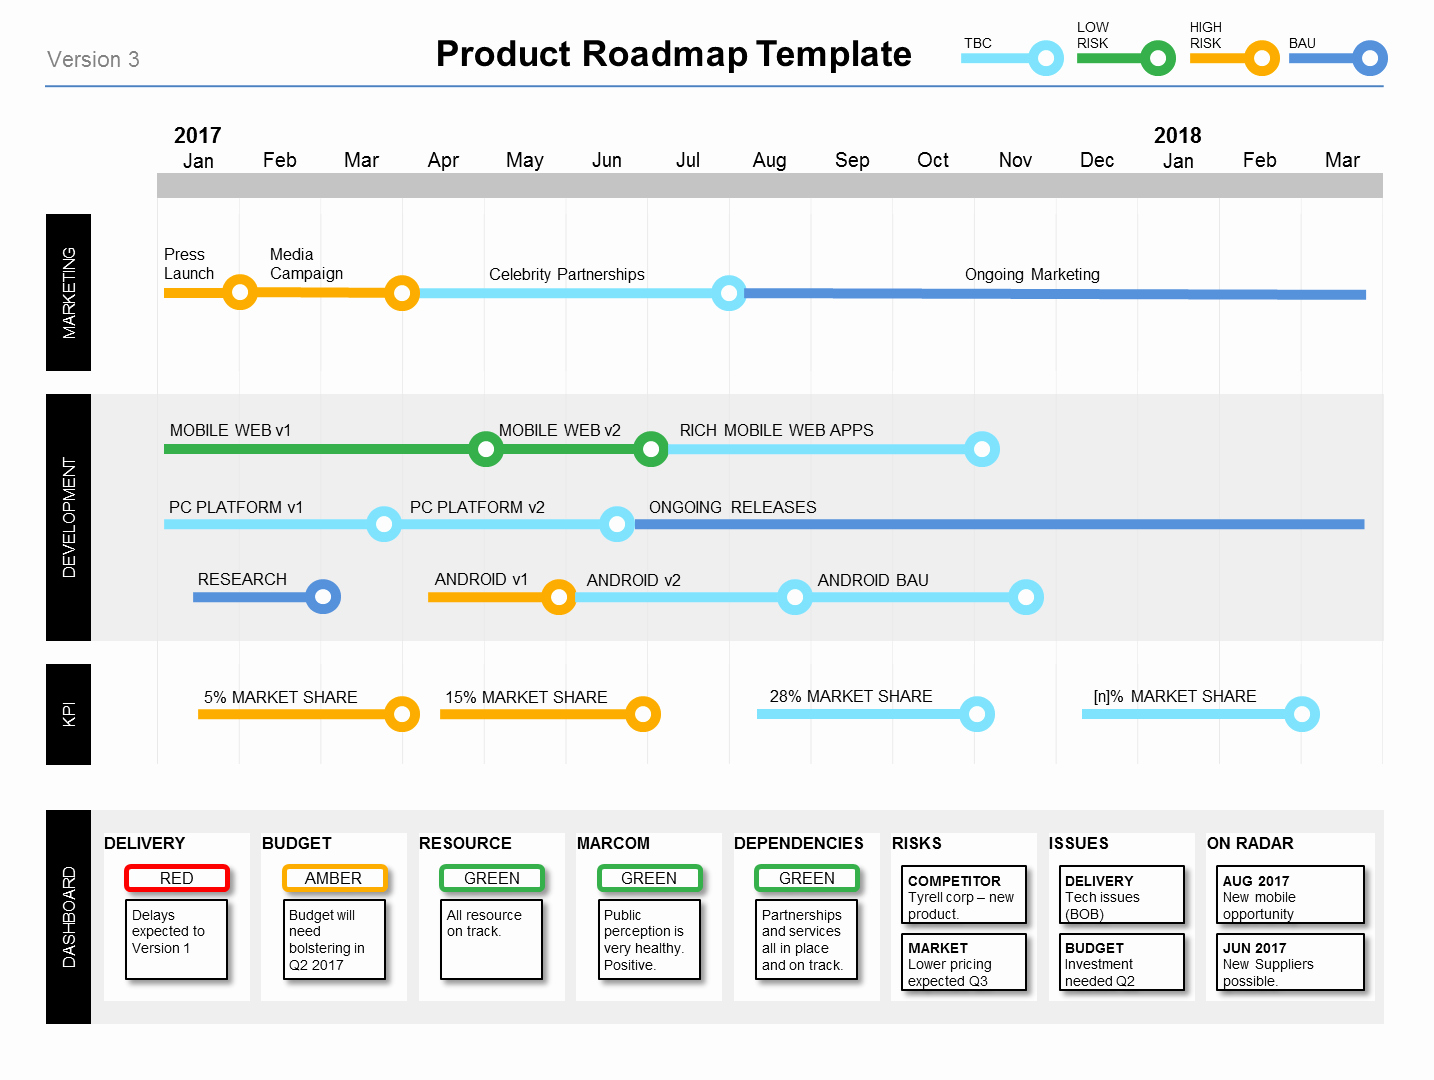 Roadmap Template Excel Free Download Beautiful Powerpoint Product Roadmap Template Product Managers